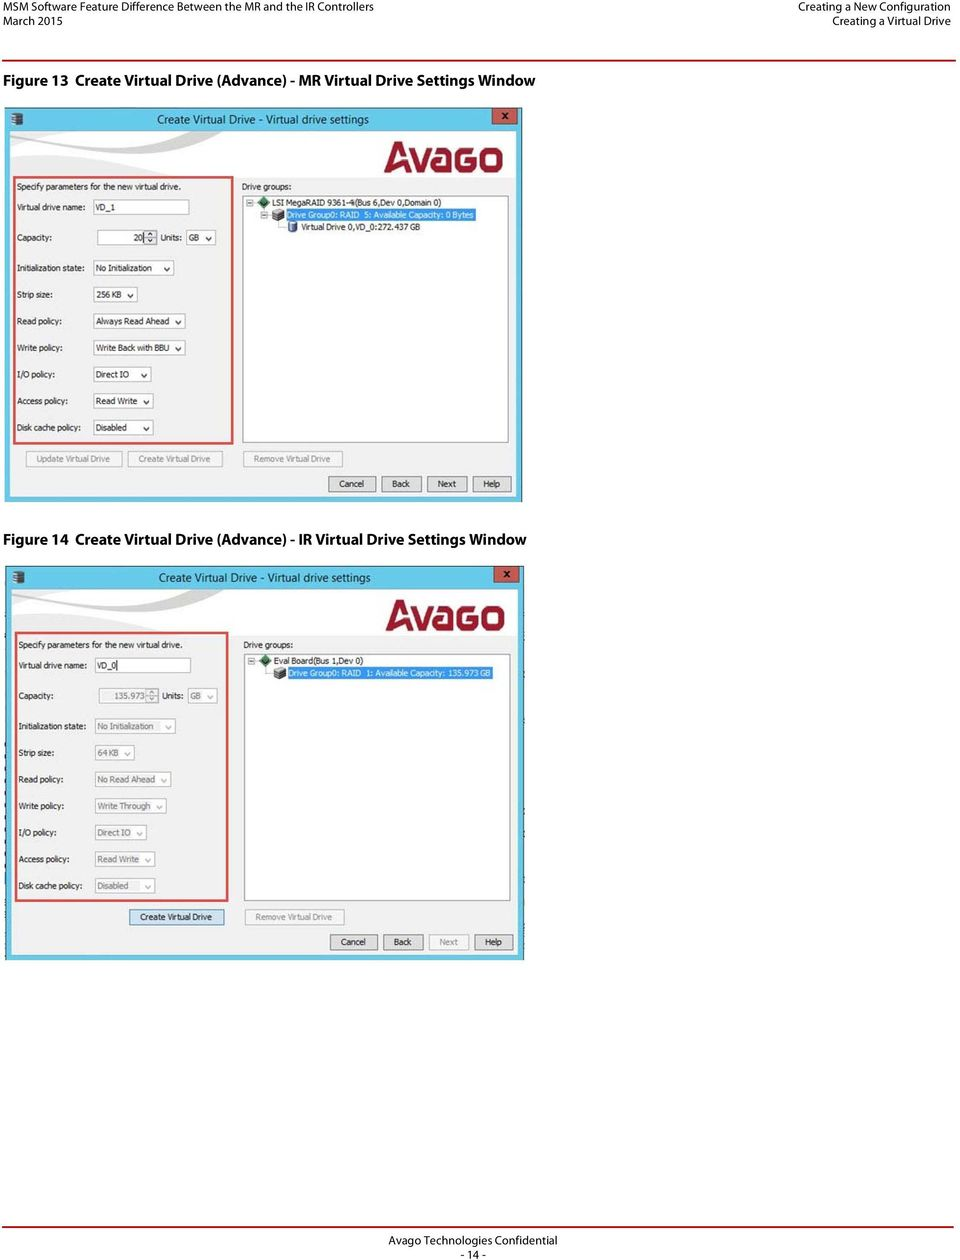 MSM Software Feature Difference Between the MR Controller